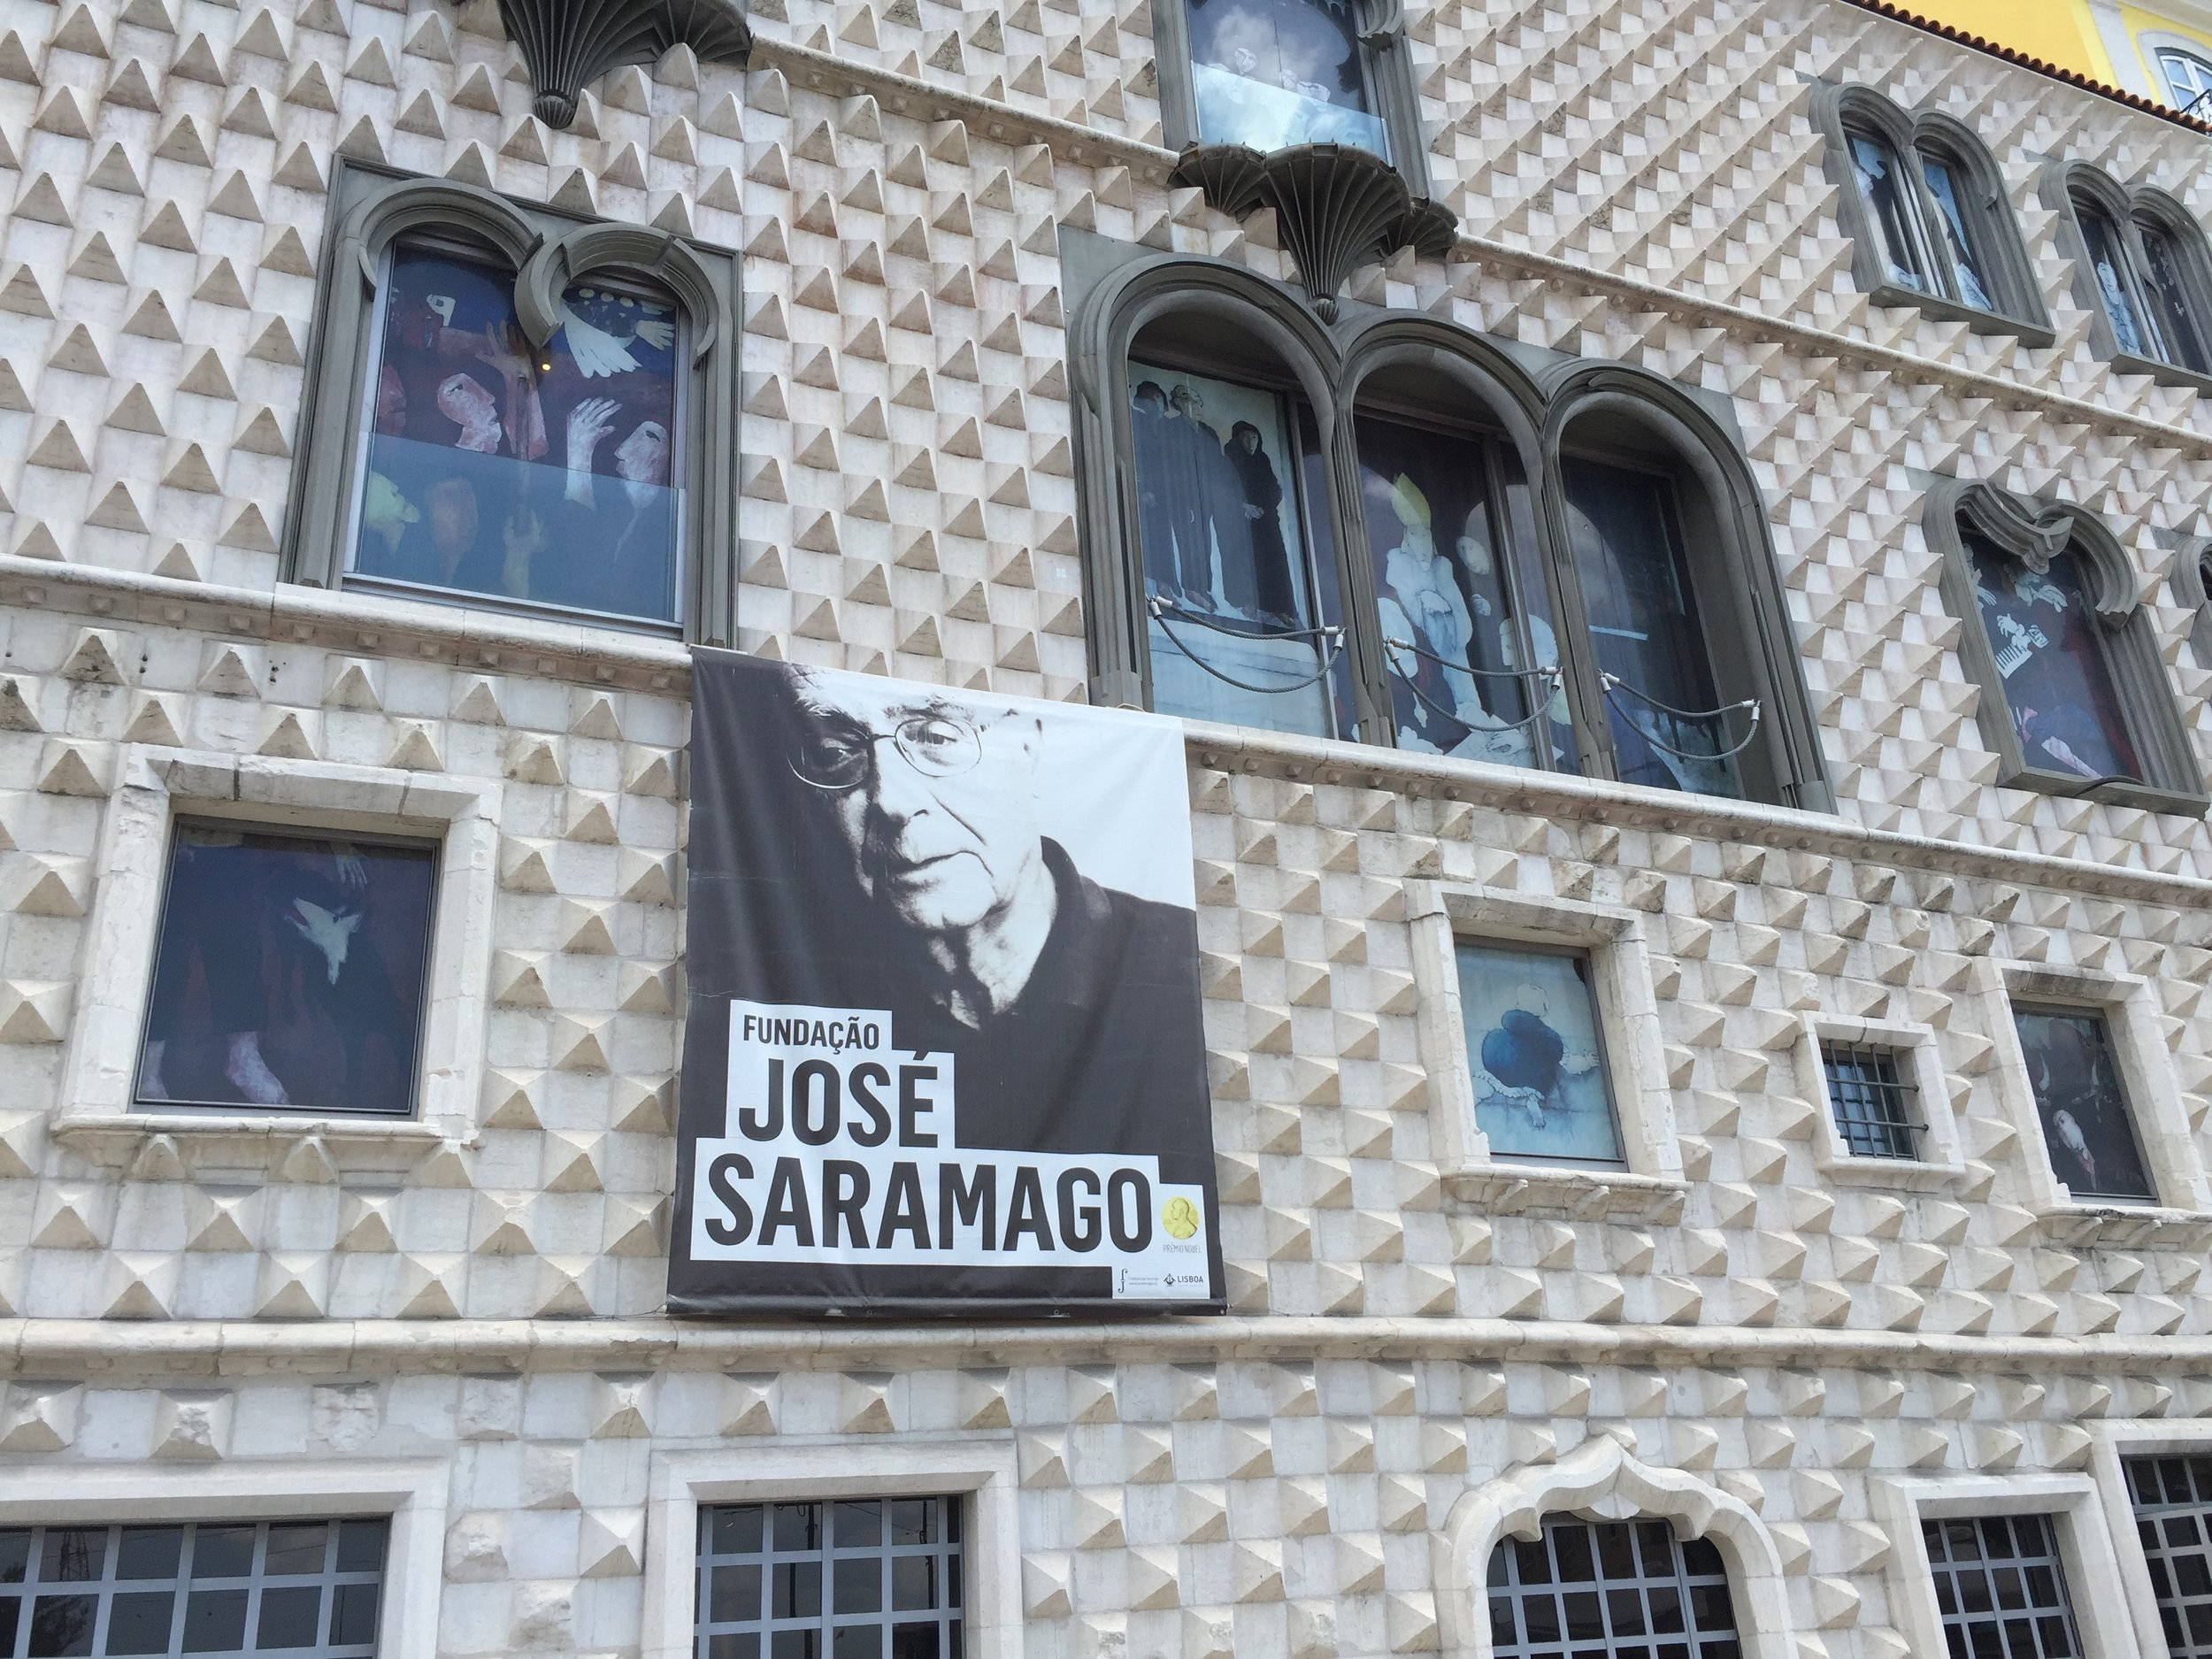 Fudação Jose Saramago, worth the visit!